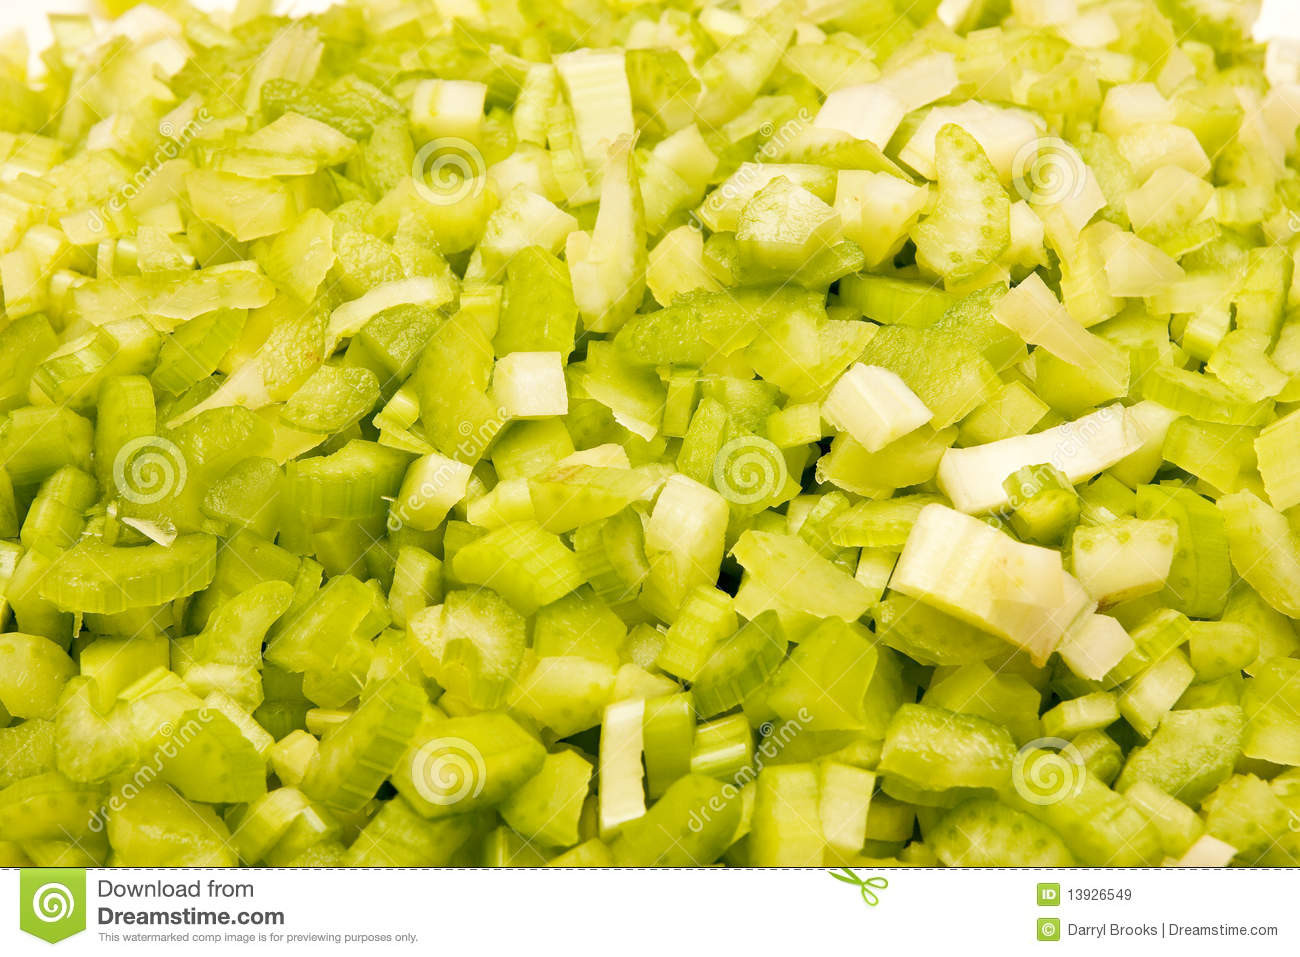 chopped celery - photo #24